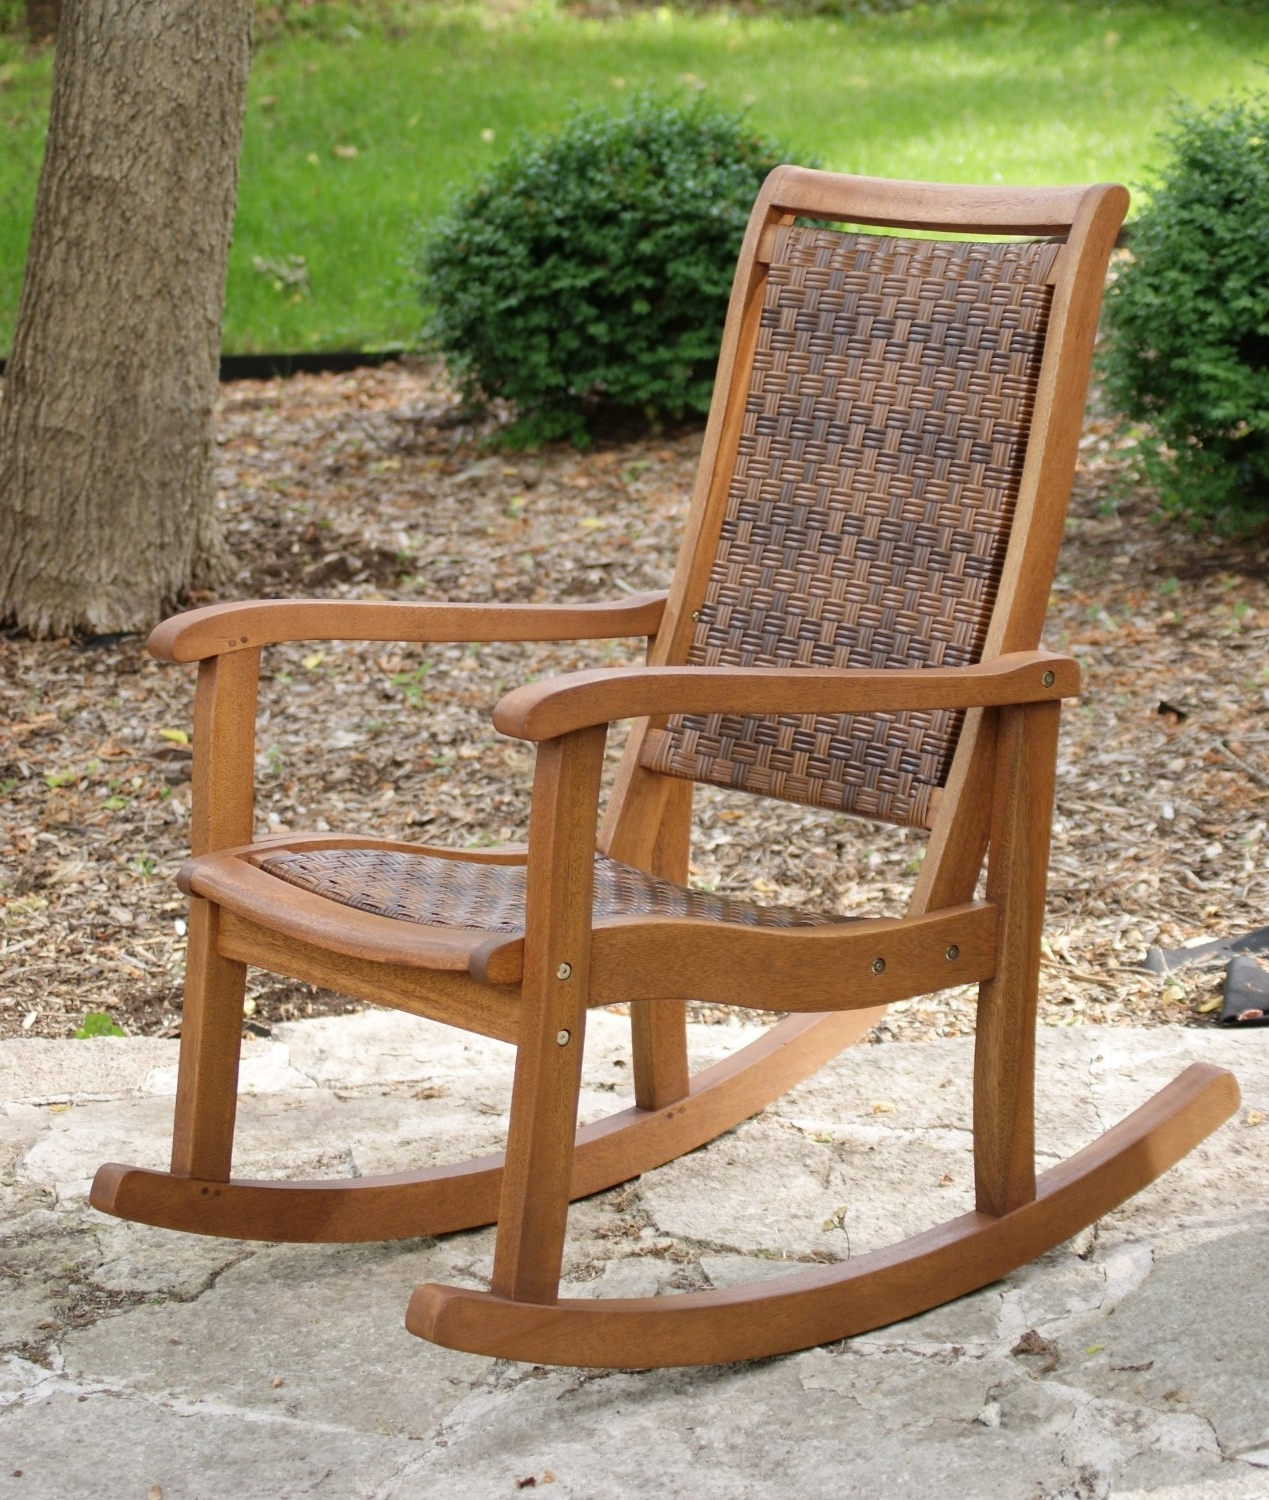 Rocking Chair Outdoor Wooden Within Most Up To Date Great Rocking Patio Chairs Outdoor Wicker Rocking Chairs Patio (View 11 of 15)